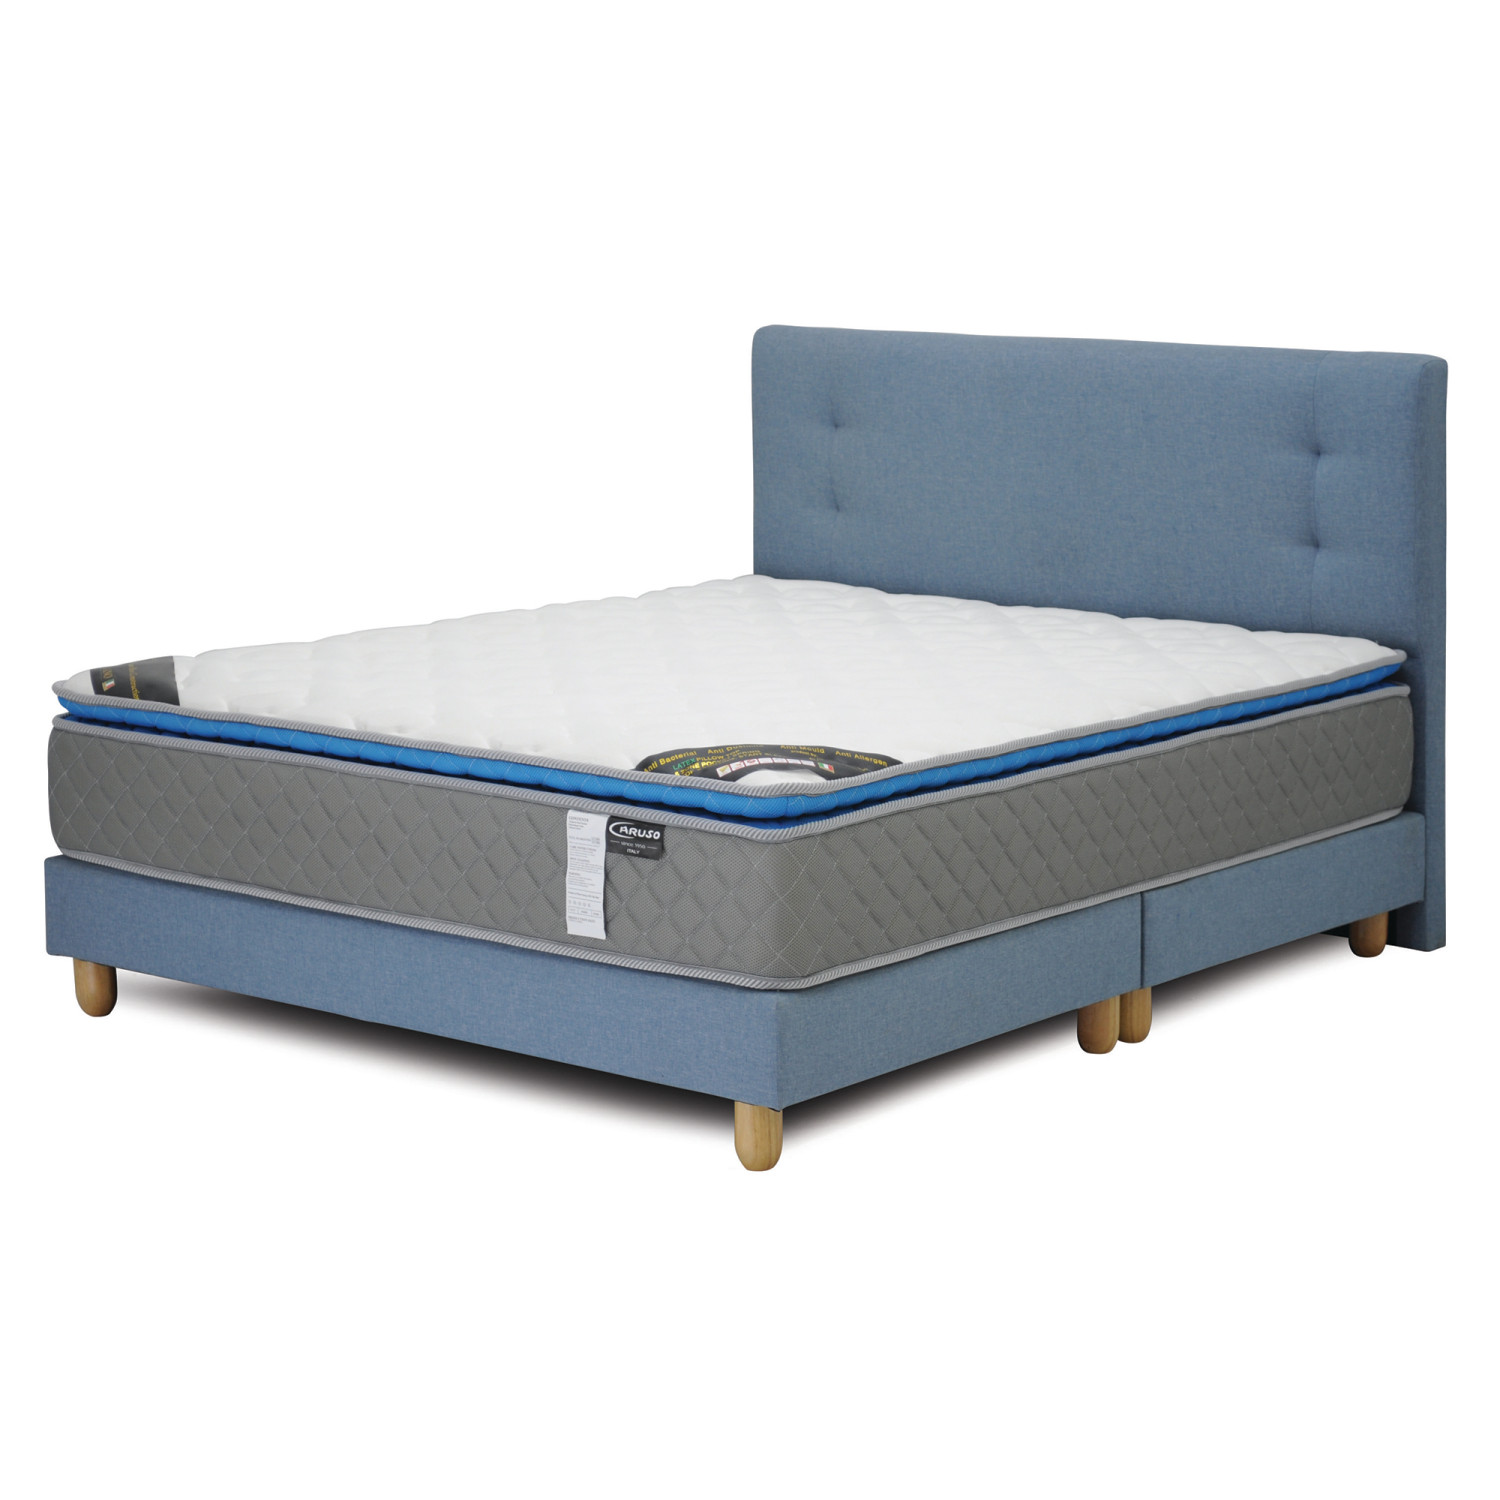 Caruso Package Caruso Latex Spring Mattress Suri Bedframe Queen Sized Furniture Home